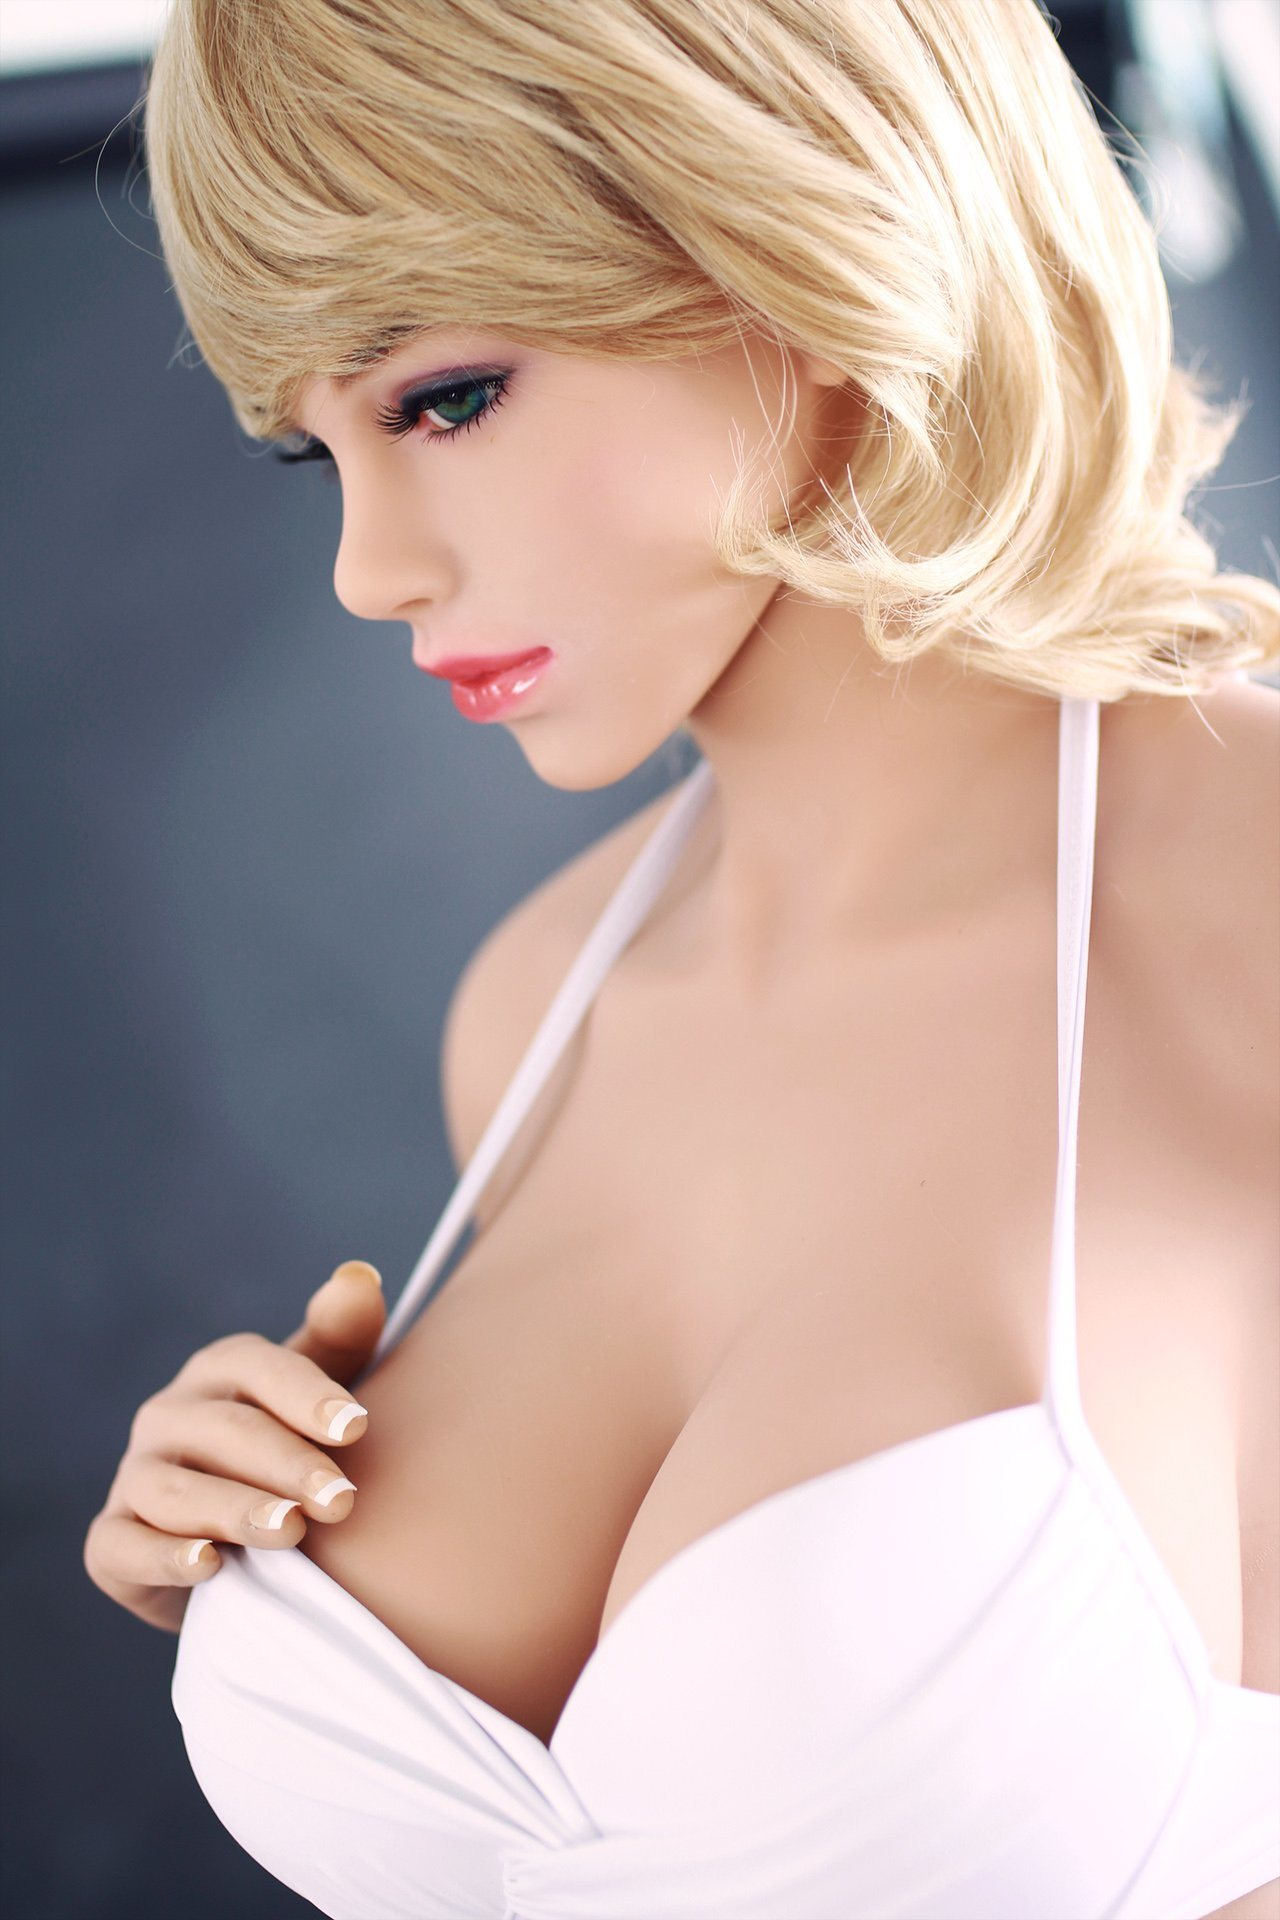 Full Solid Silicone Sex Doll for Men 165cm Life Size Real Girl Doll